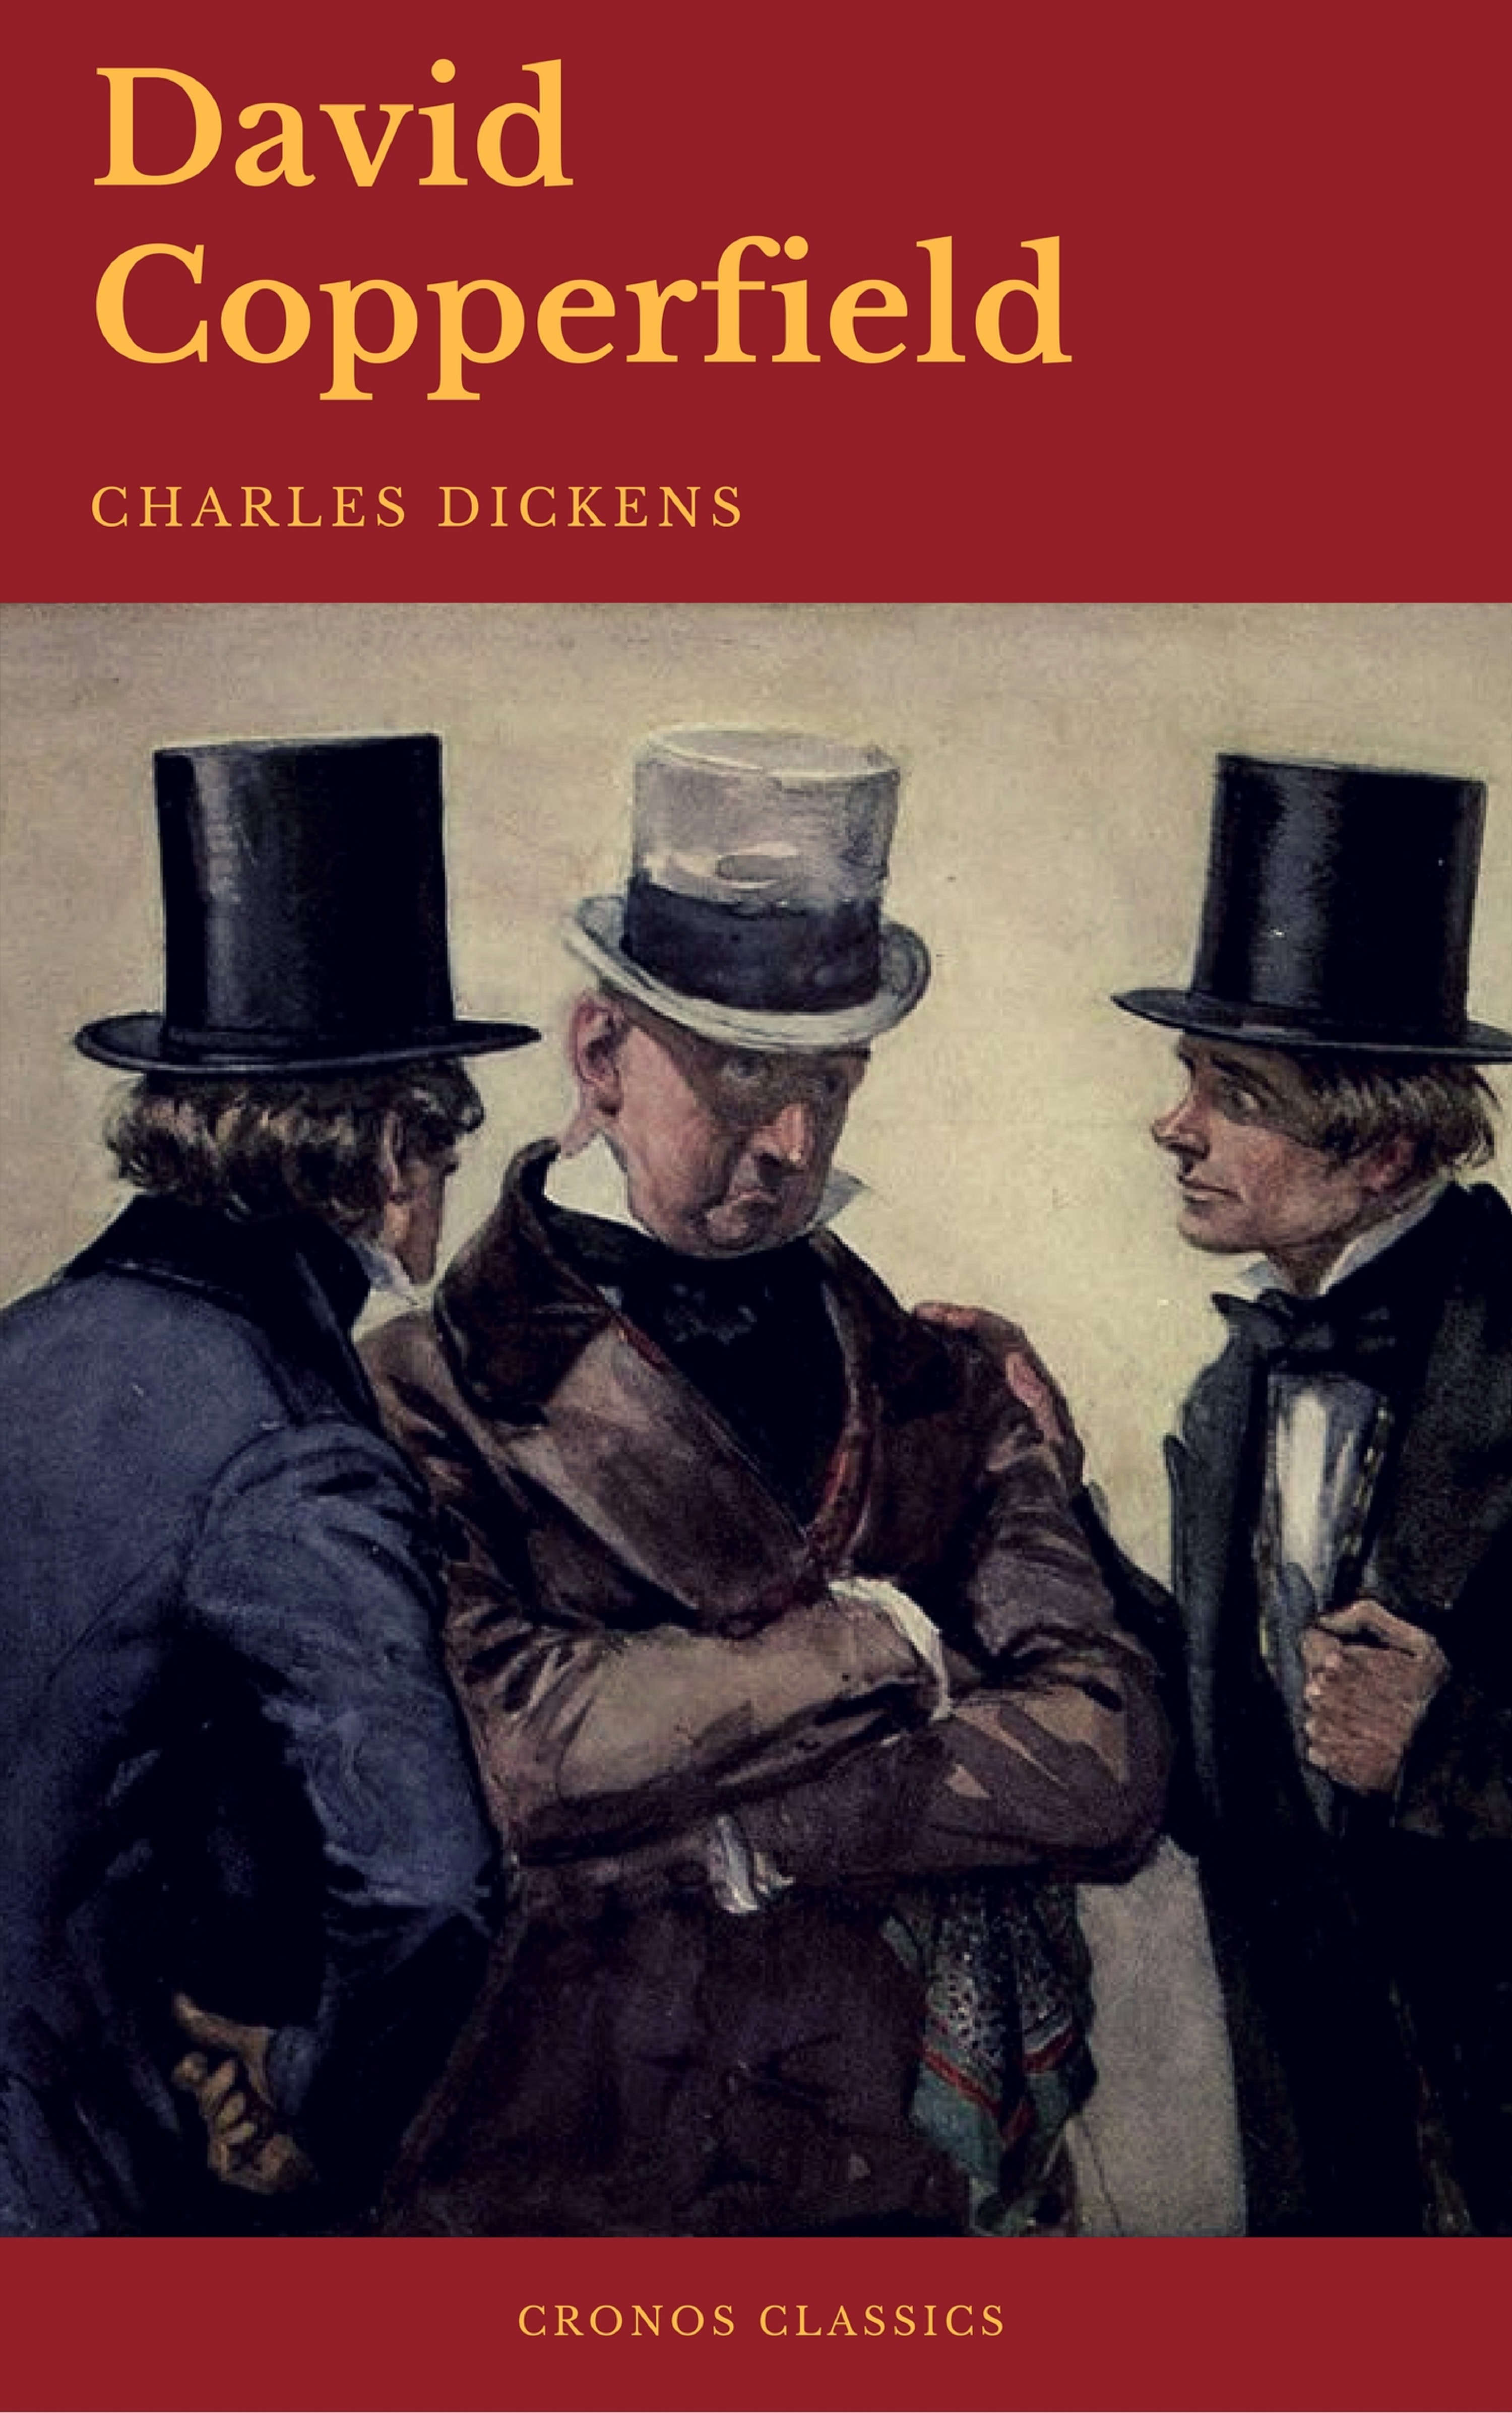 Charles Dickens David Copperfield (Cronos Classics) charles dickens barnaby rudge cronos classics